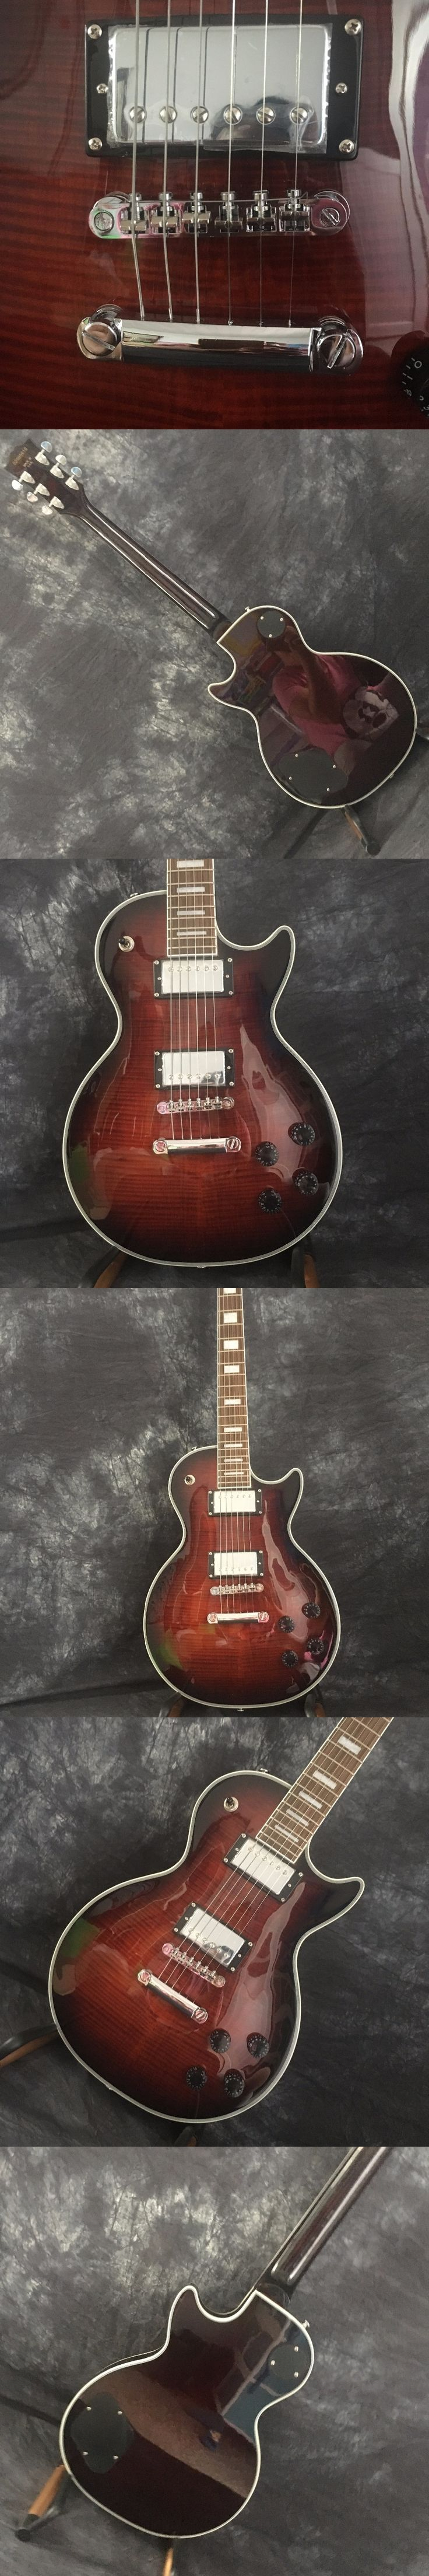 Human Best selling Free shipping fiamed maple top LP electric guitar picture real shot